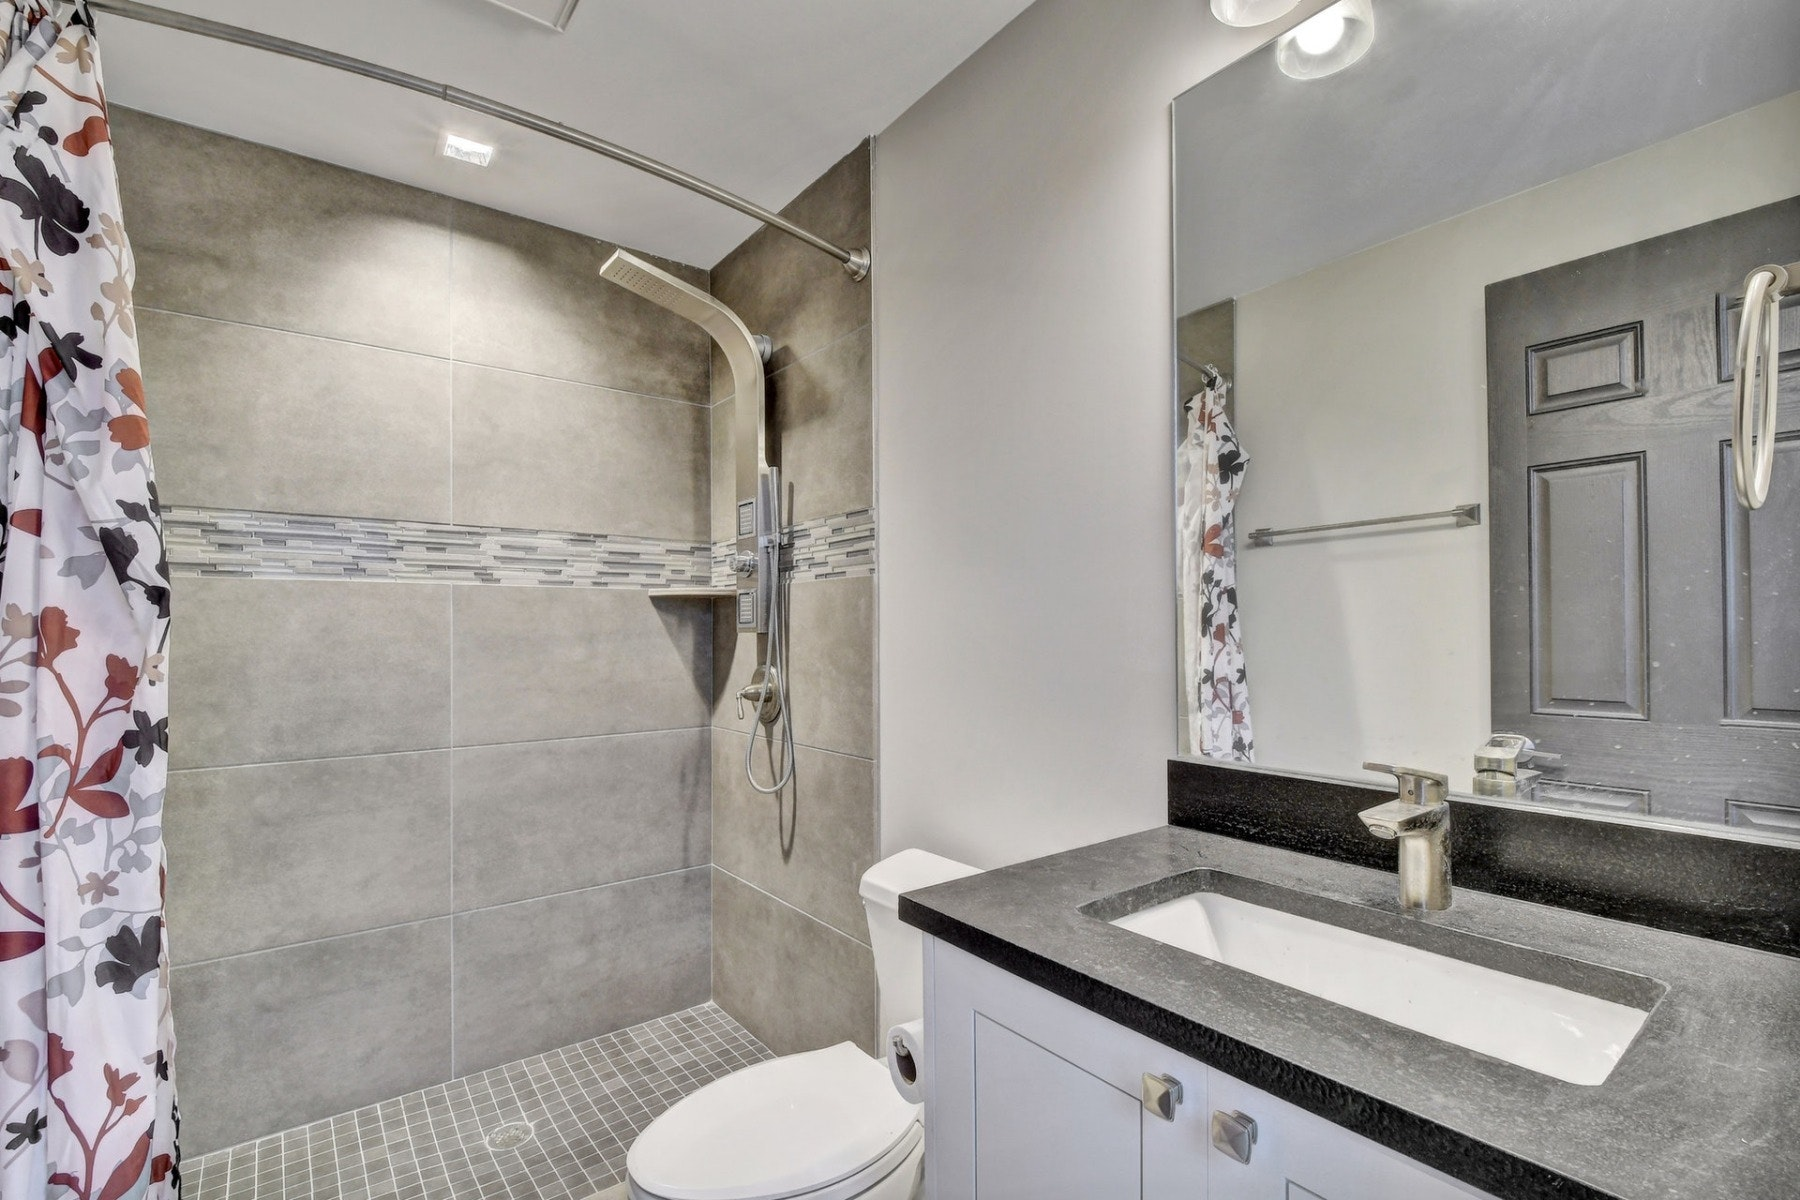 084 262276 other 20beds 20and 20baths 20464 6076079.jpg?ixlib=rb 3.2